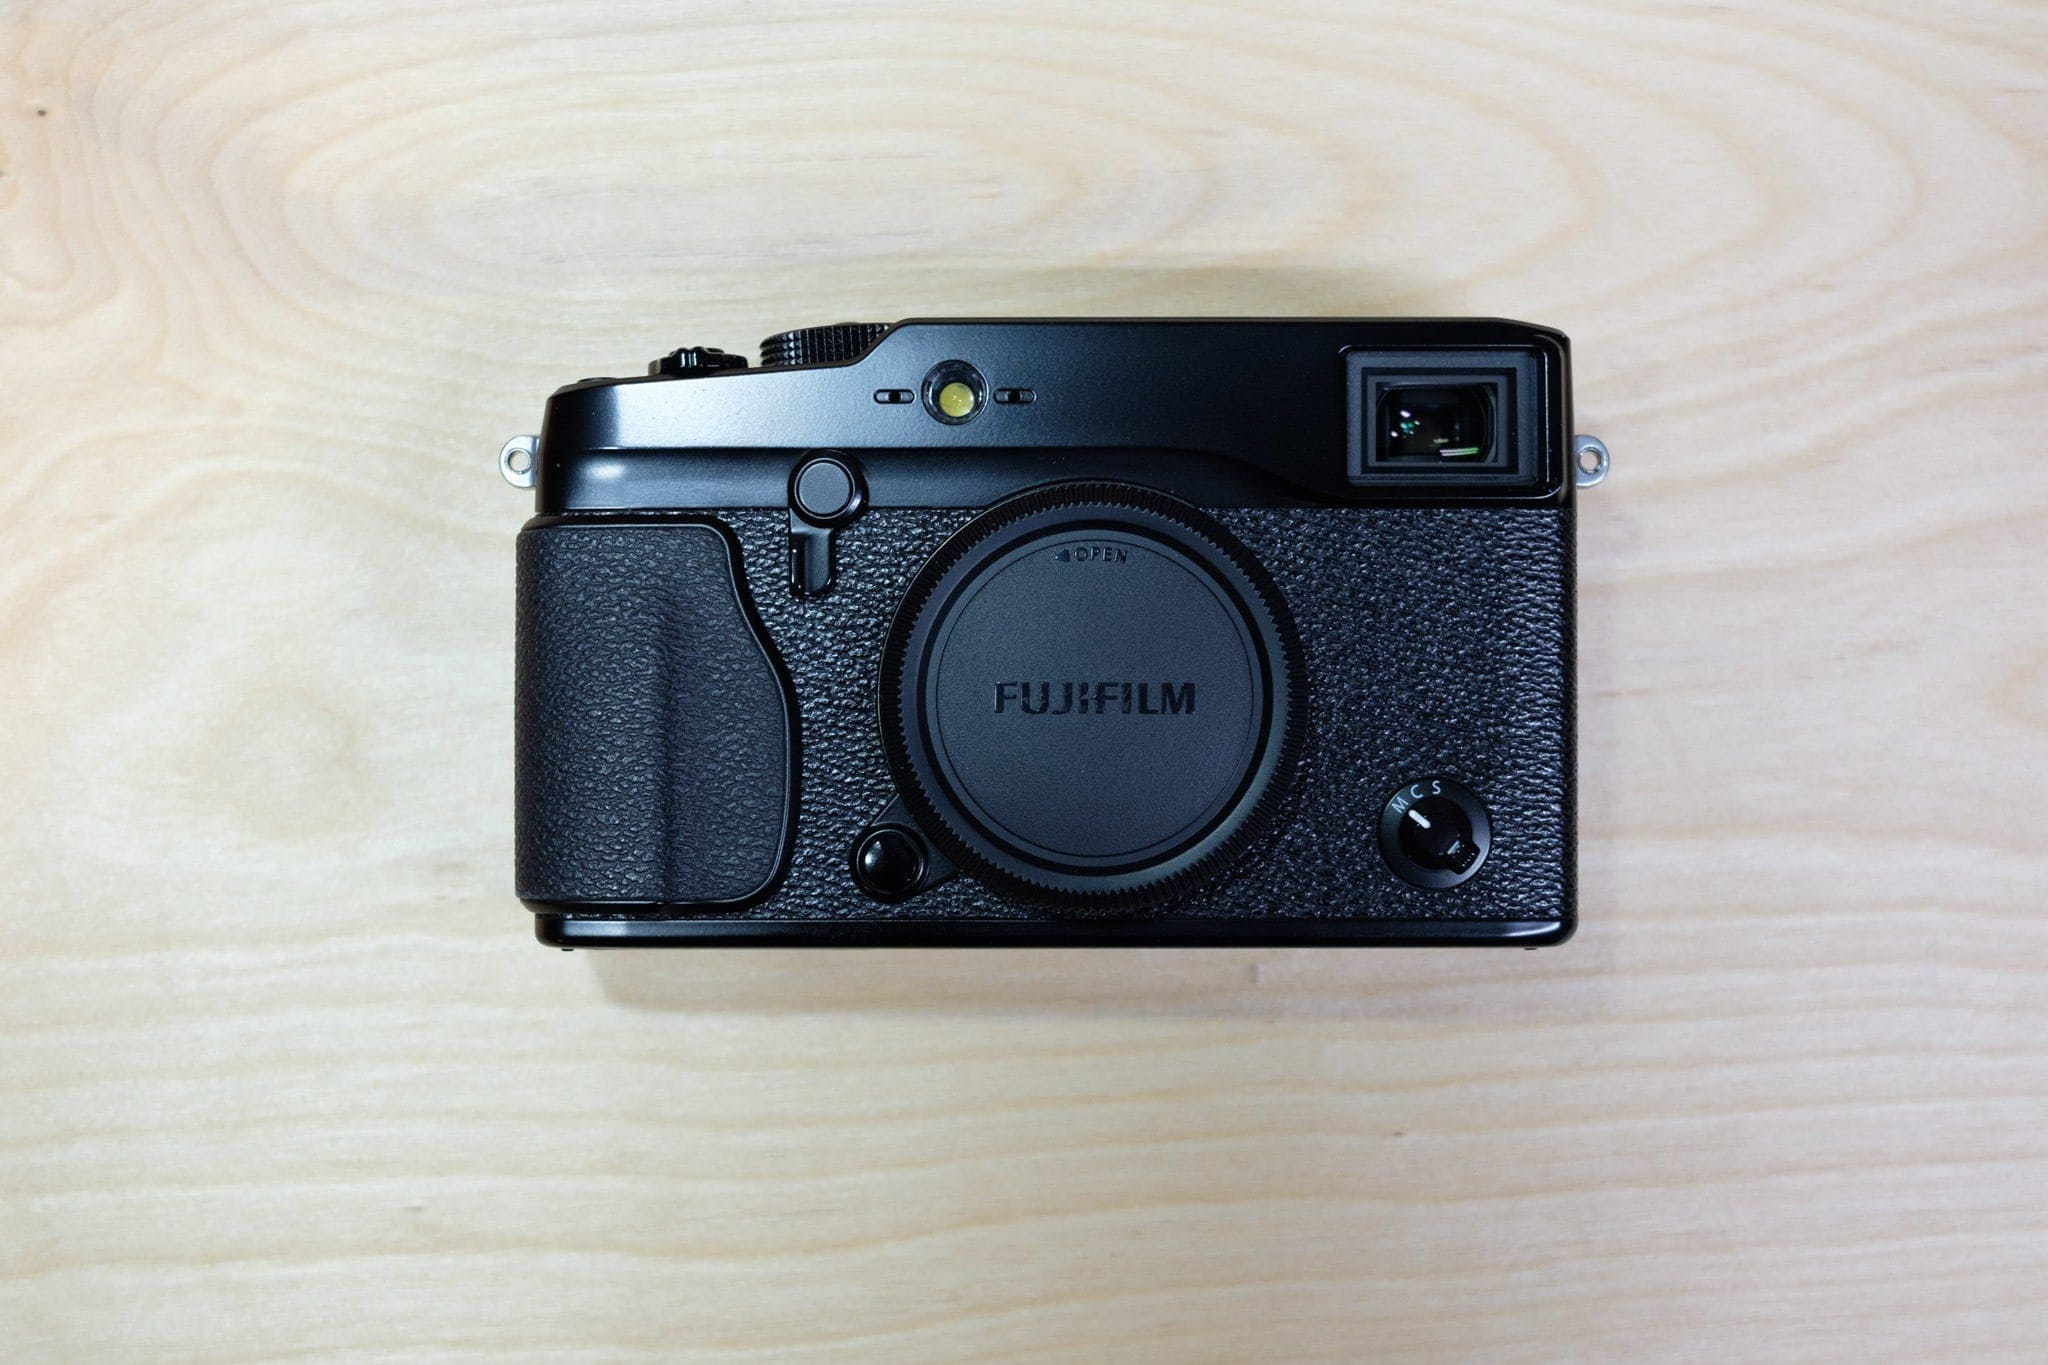 Install the Fujifilm body cap.